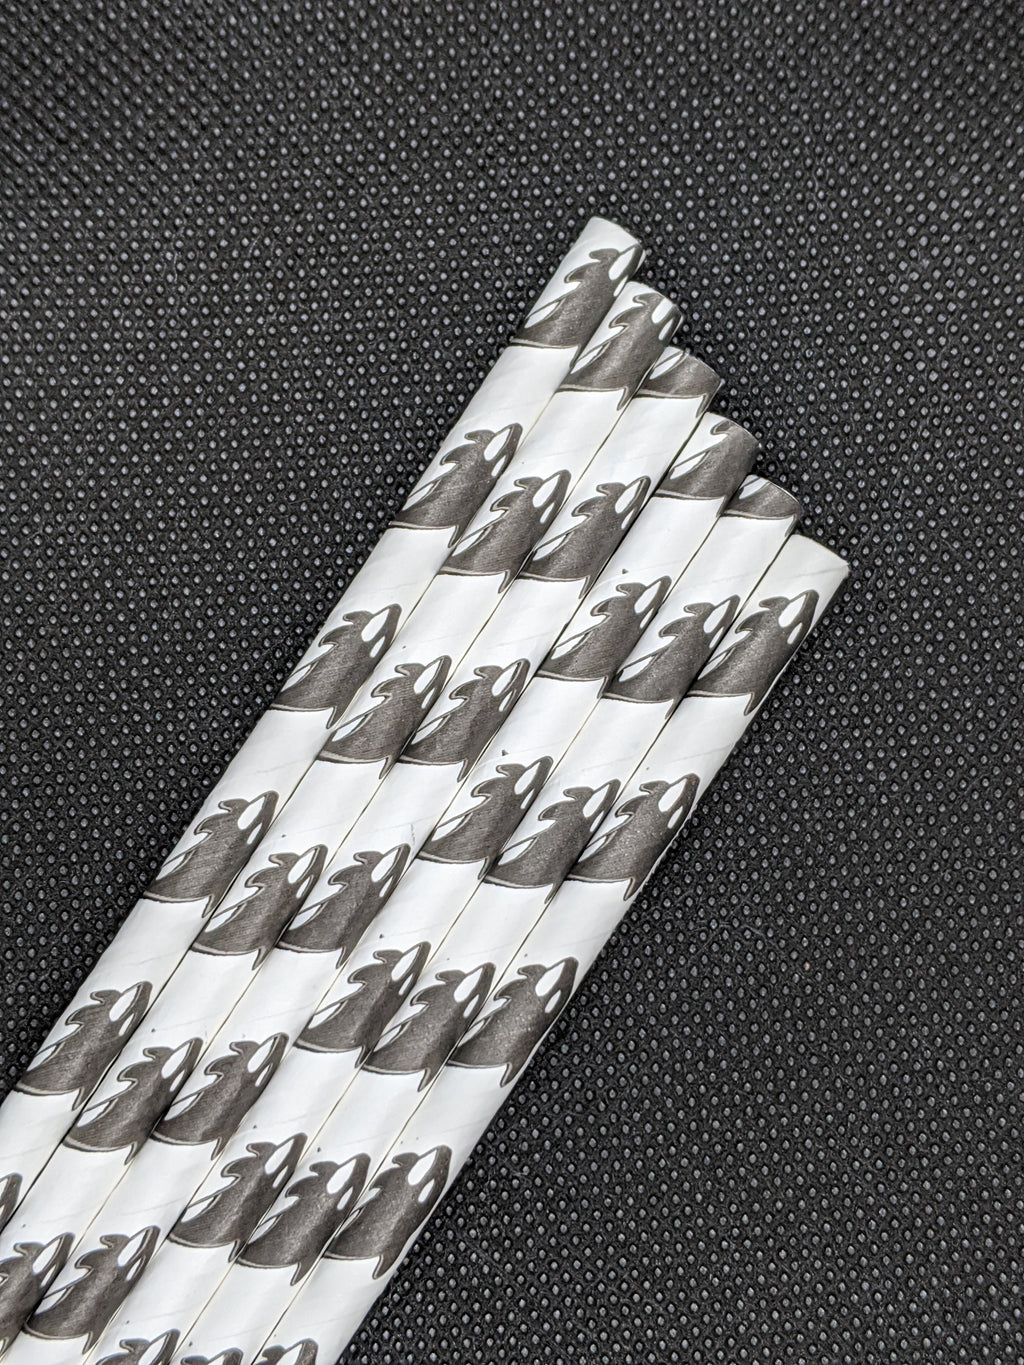 "7.75"" PAPER STRAWS - ORCA DESIGN - 4000 CT (UNWRAPPED) - Orcas Ocean Straws"